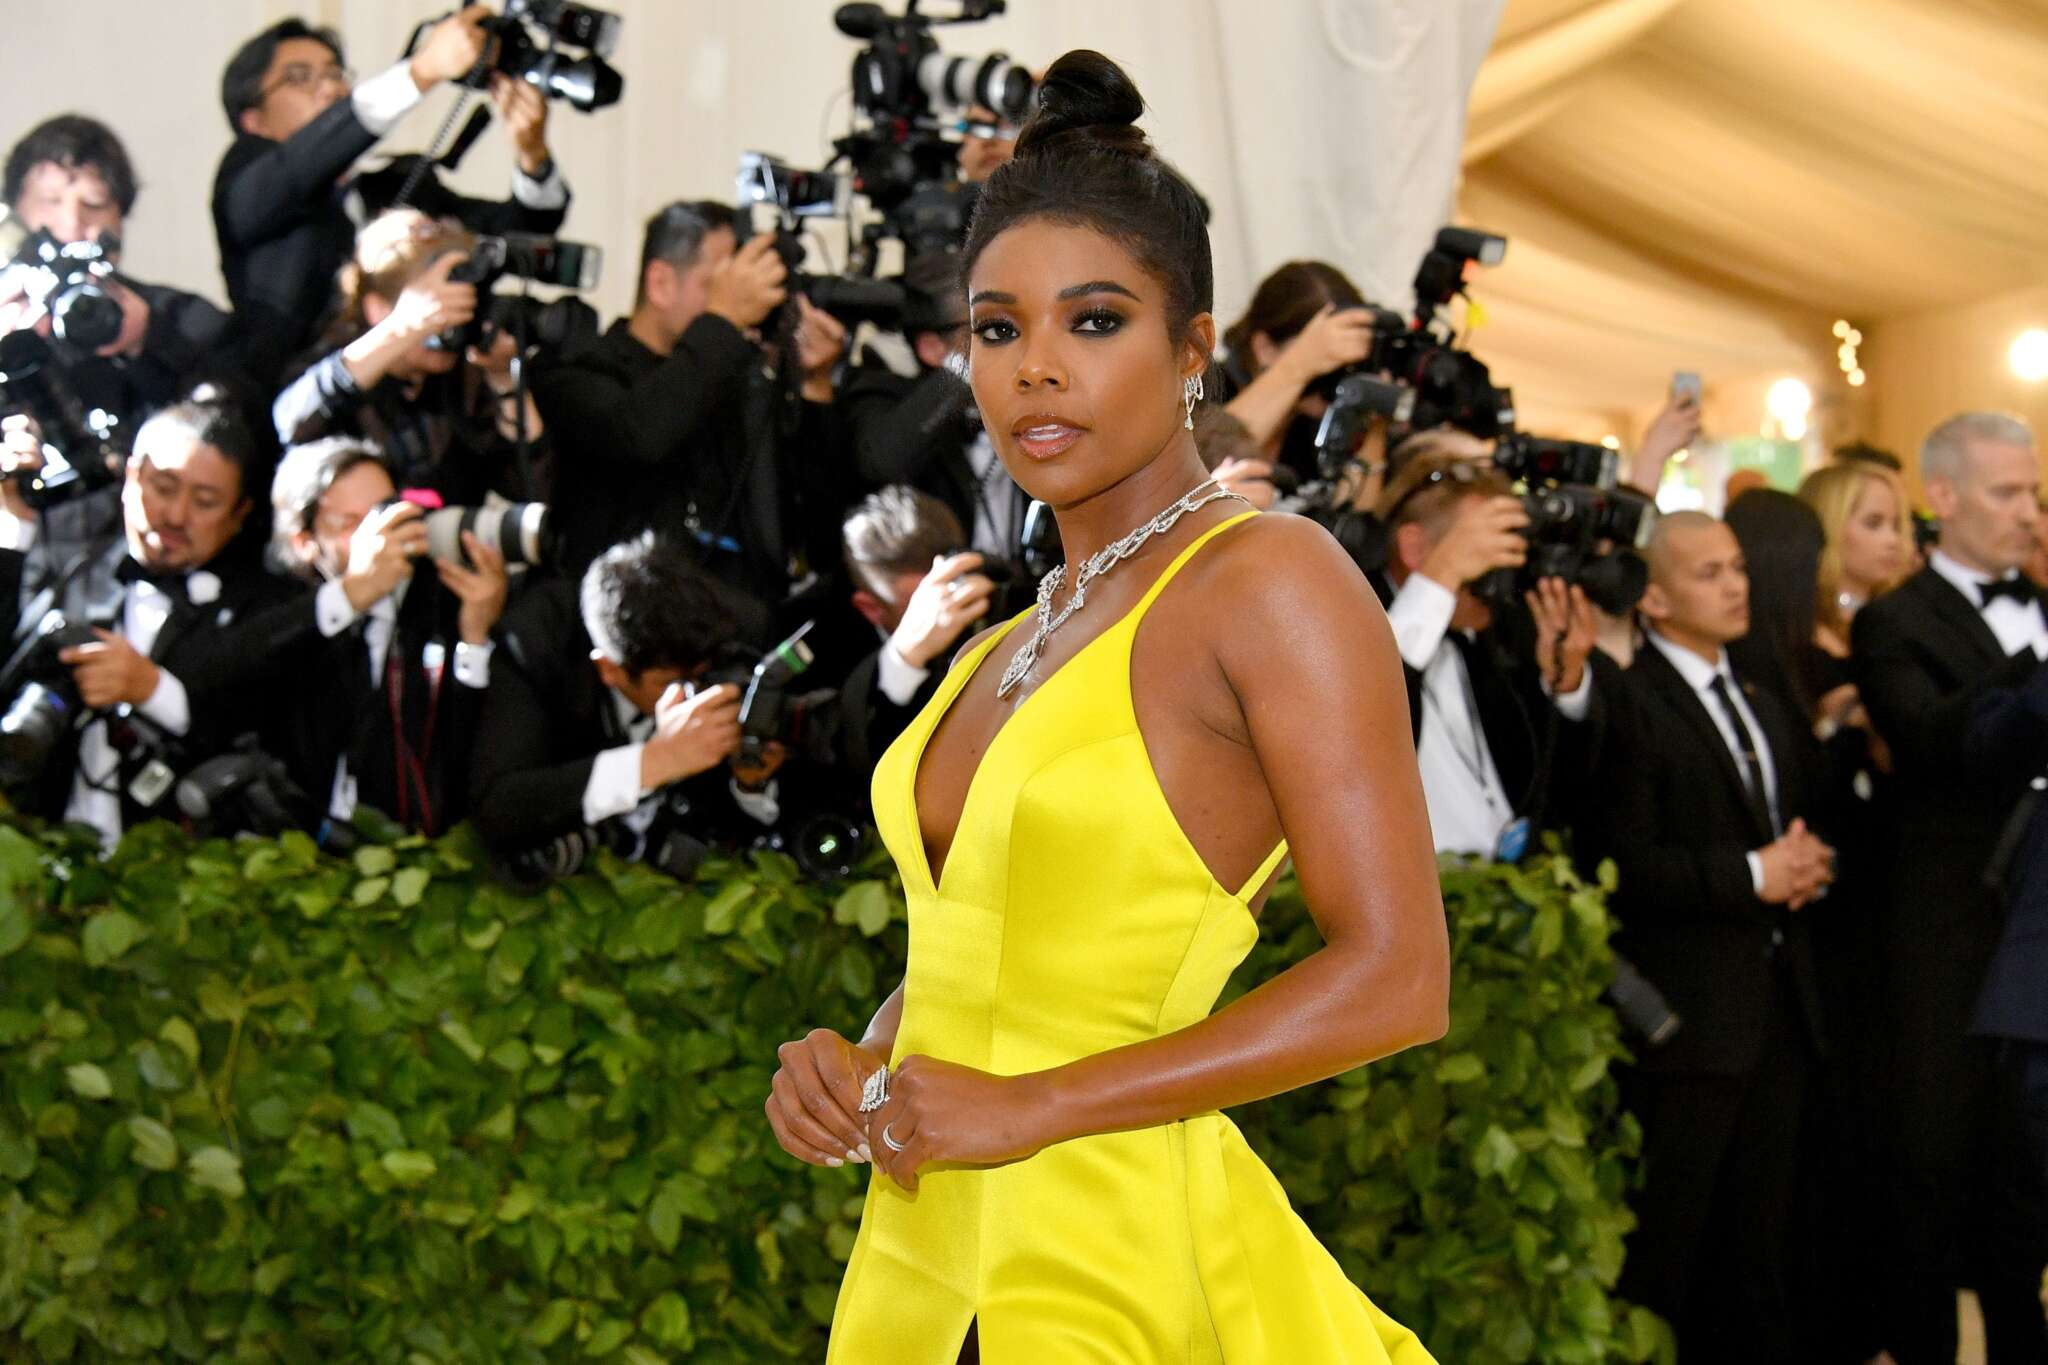 gabrielle-union-addresses-what-happened-at-capitol-hill-treason-sedition-domestic-terrorism